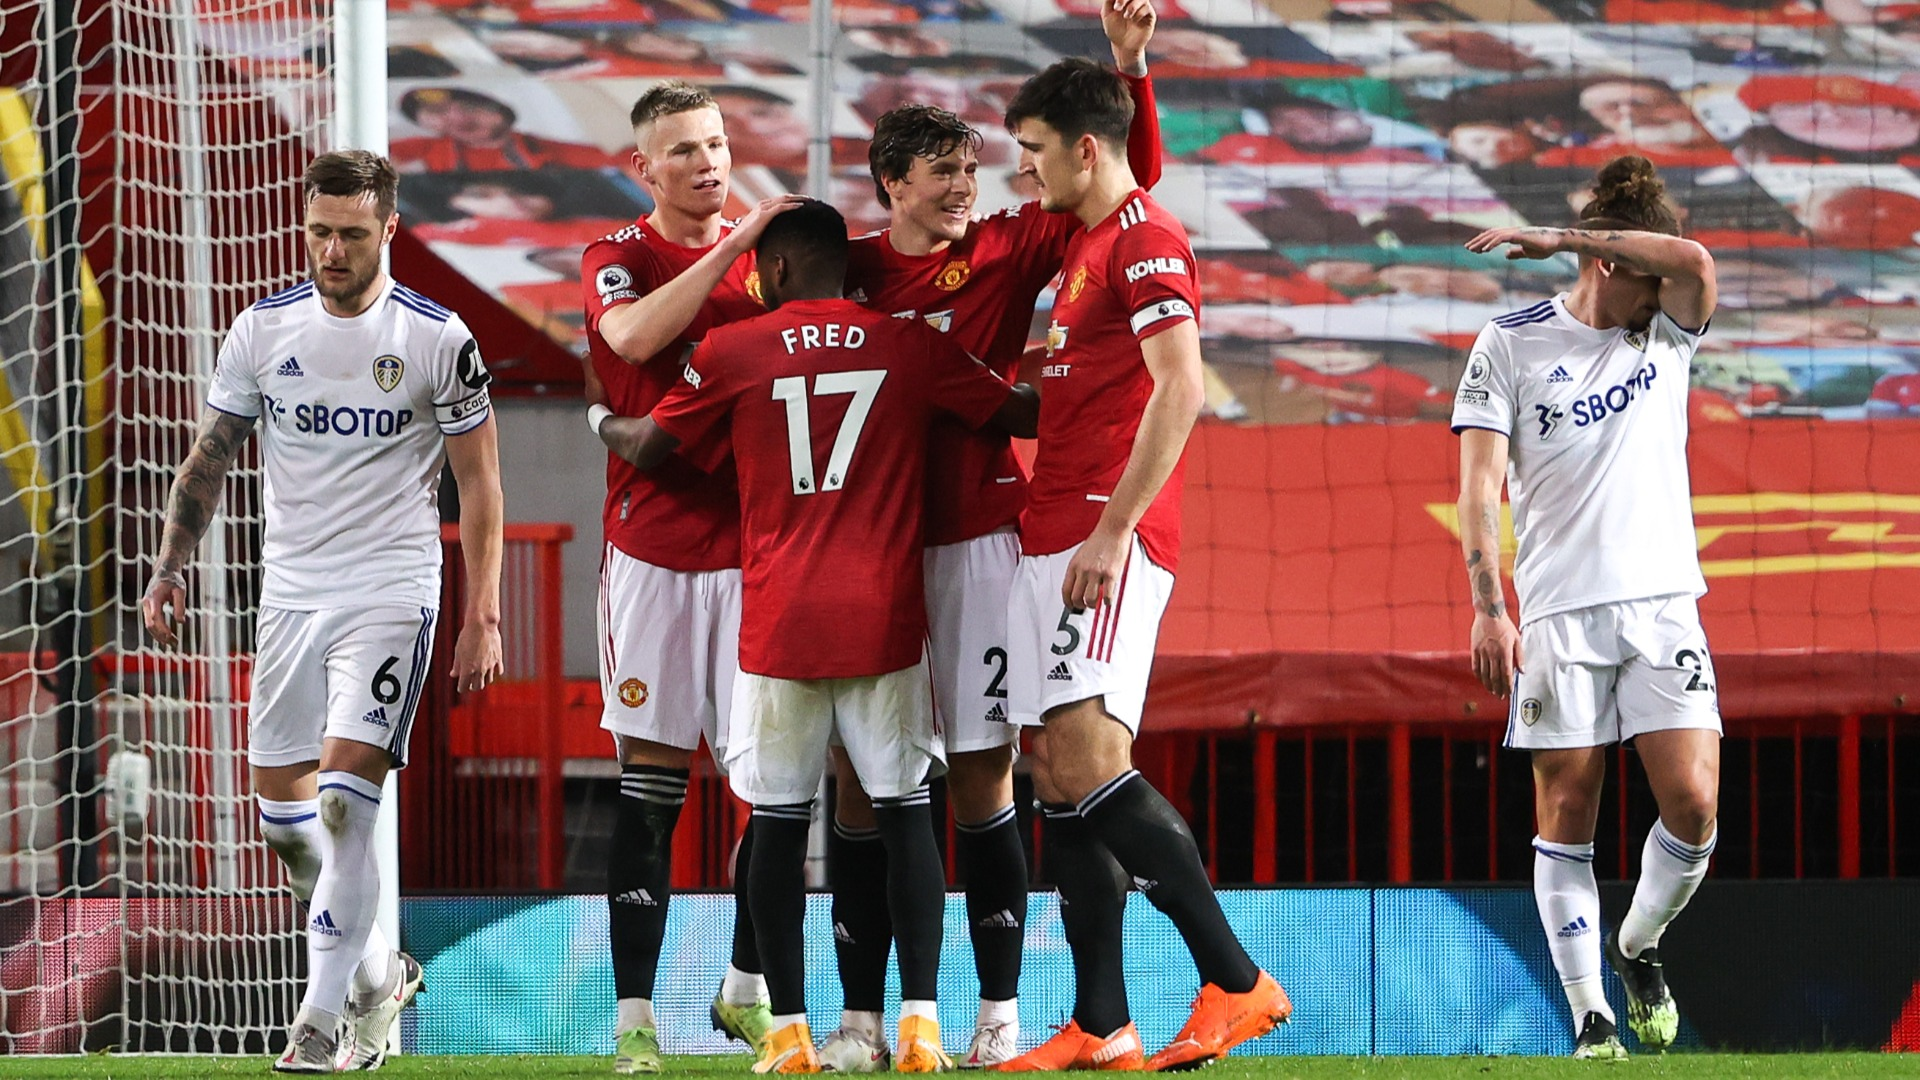 Man Utd's 6-2 'Clasico' win over Leeds not best performance of season, says Fred